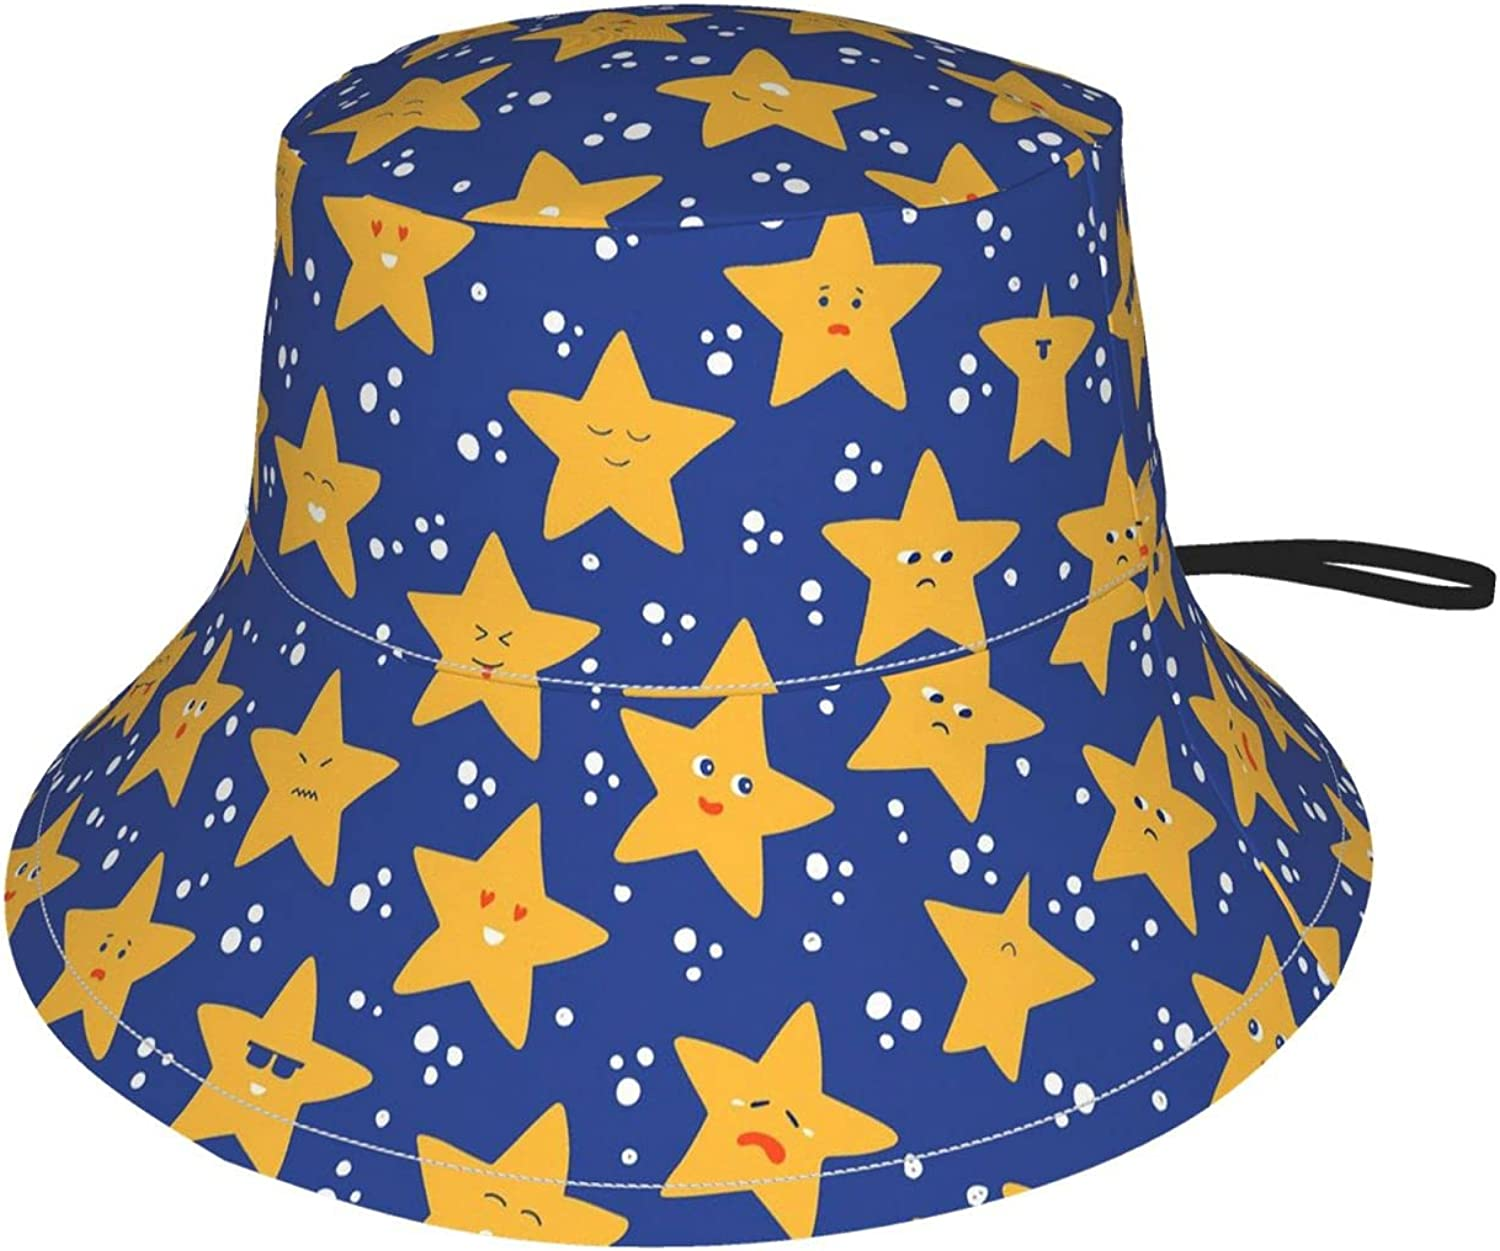 Cute Stars Kids Bucket Hat Sun Protection Hat for Boys Girls Breathable Summer Play Hat